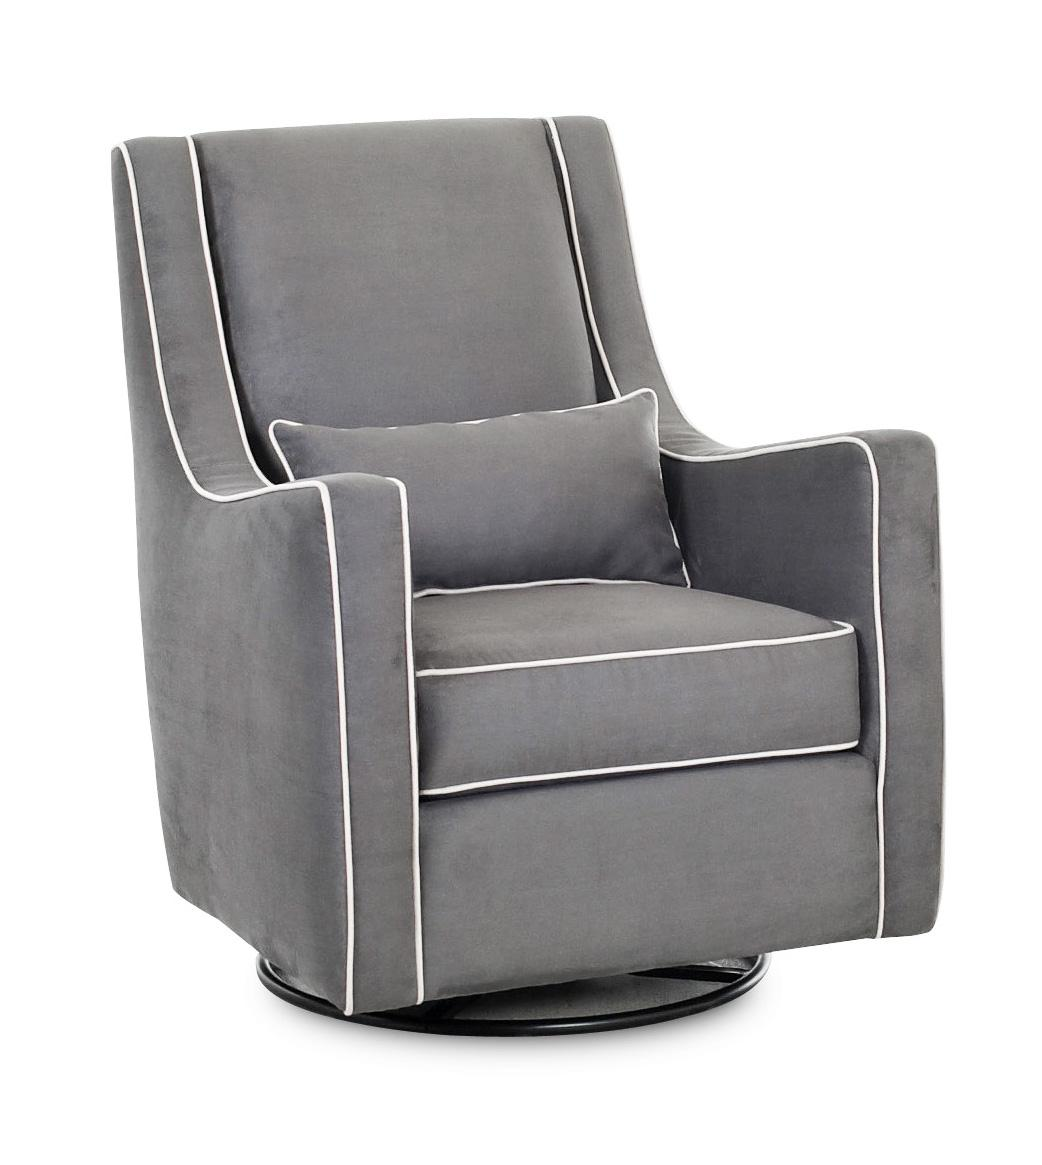 Upholstered Glider Chair Klaussner Chairs And Accents Contemporary Lacey Swivel